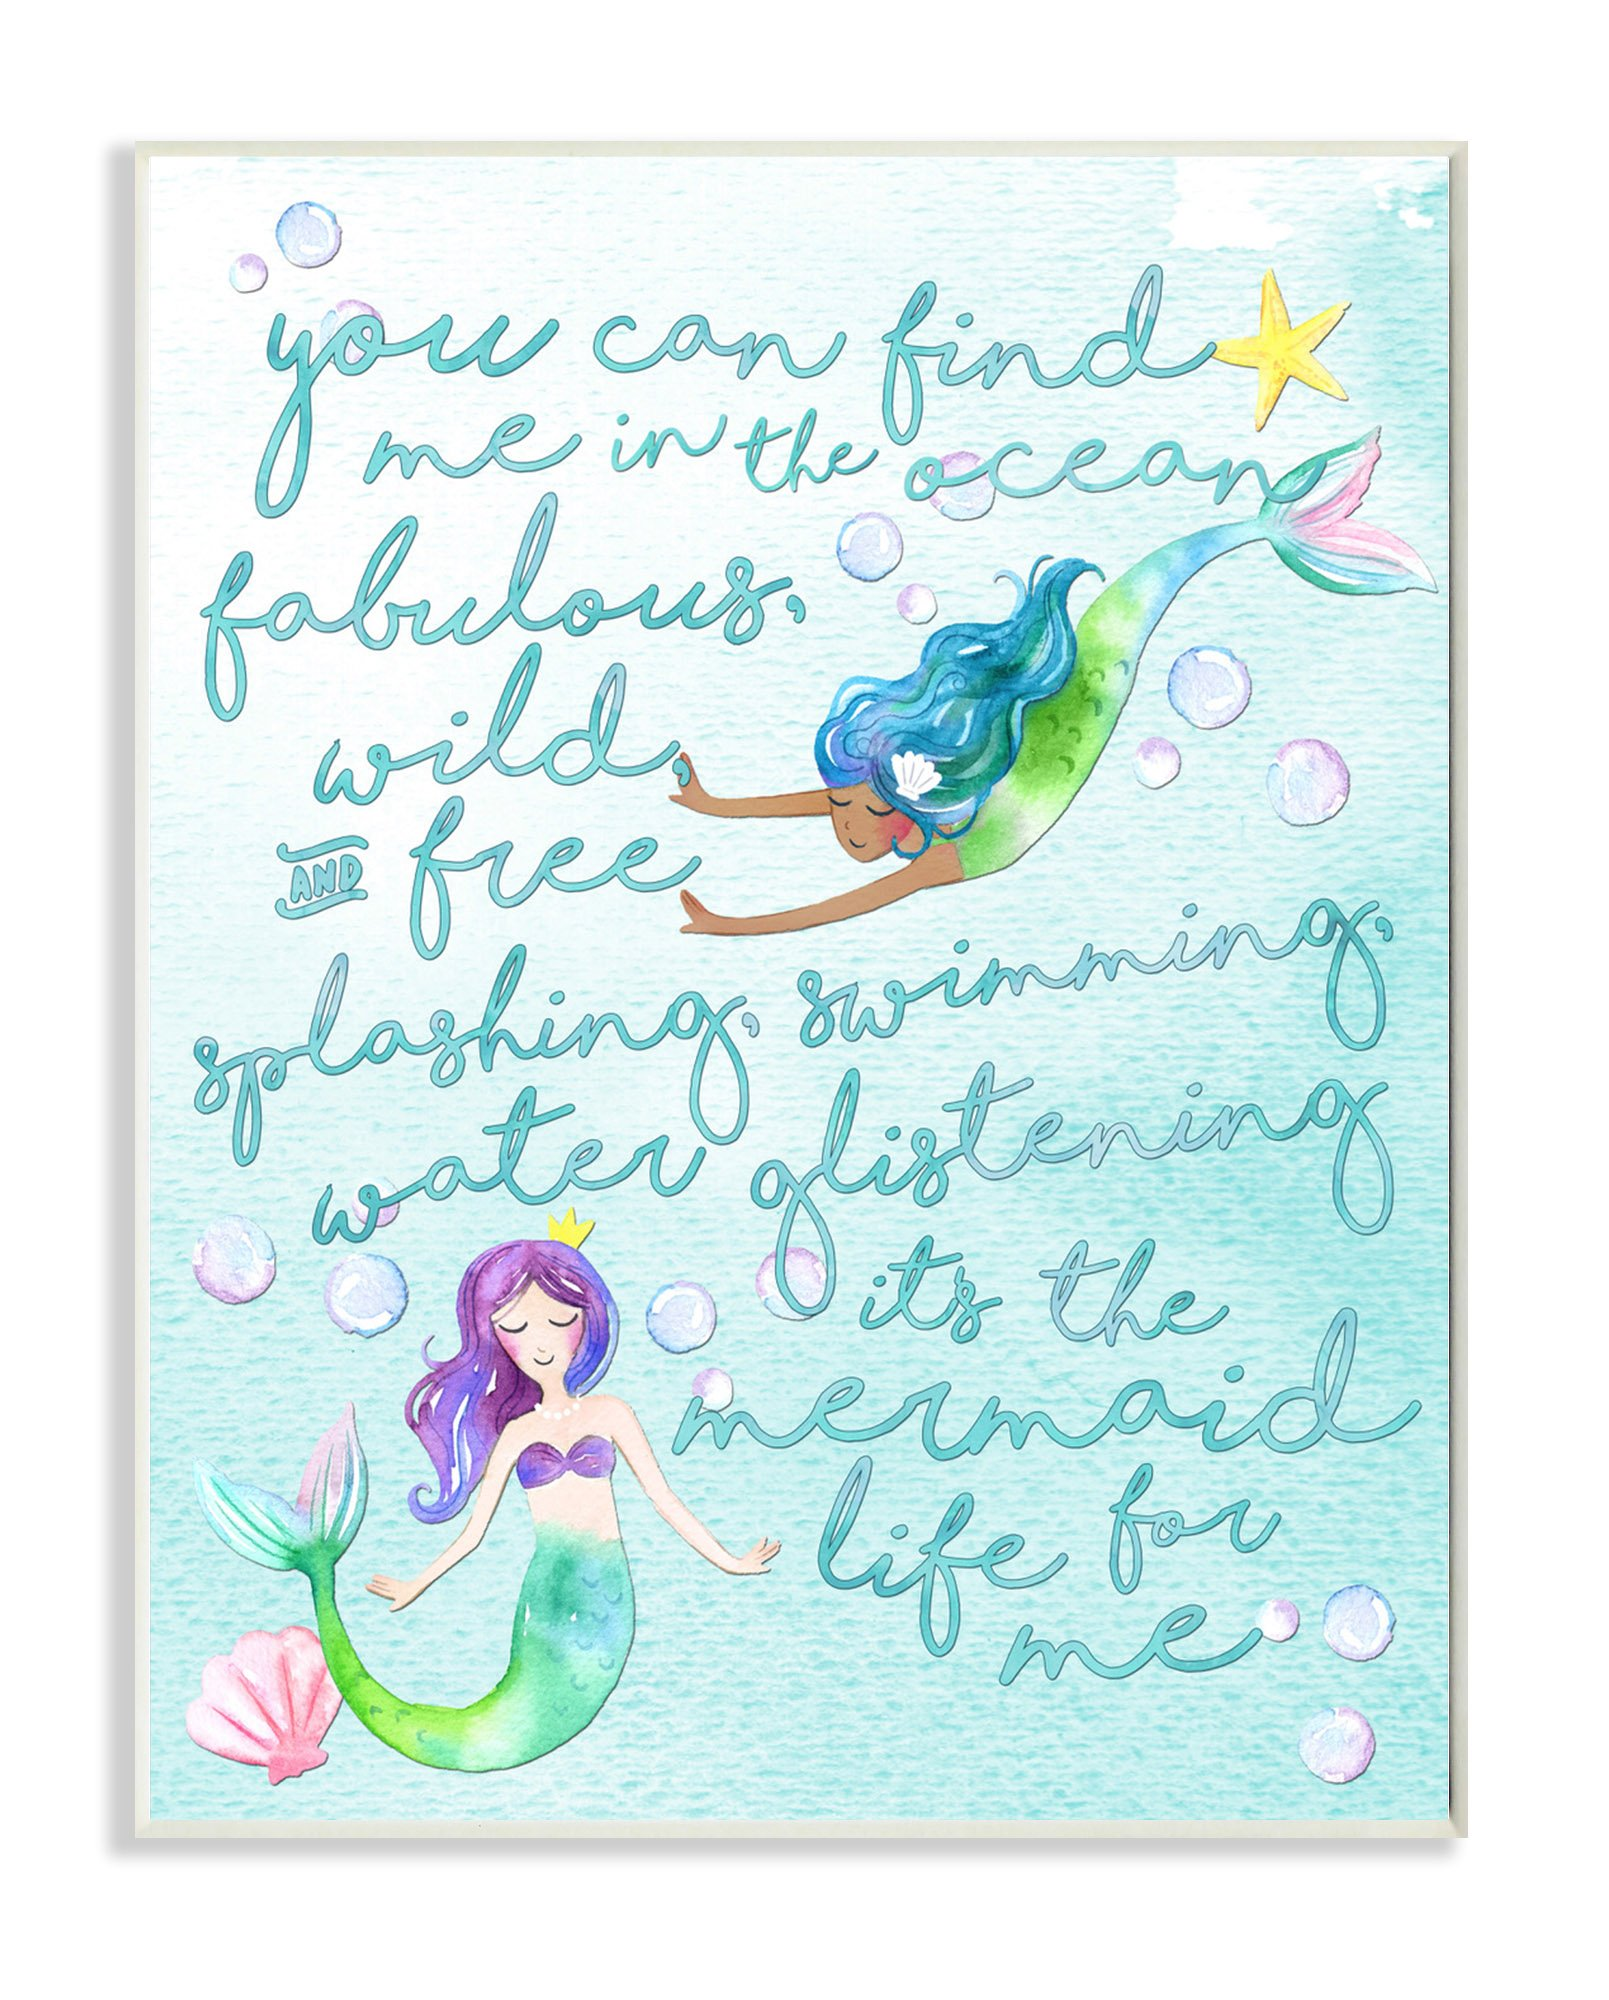 The Kids Room by Stupell Stupell Home Décor Mermaid Life For Me Painting Wall Plaque Art, 10 x 0.5 x 15, Proudly Made in USA